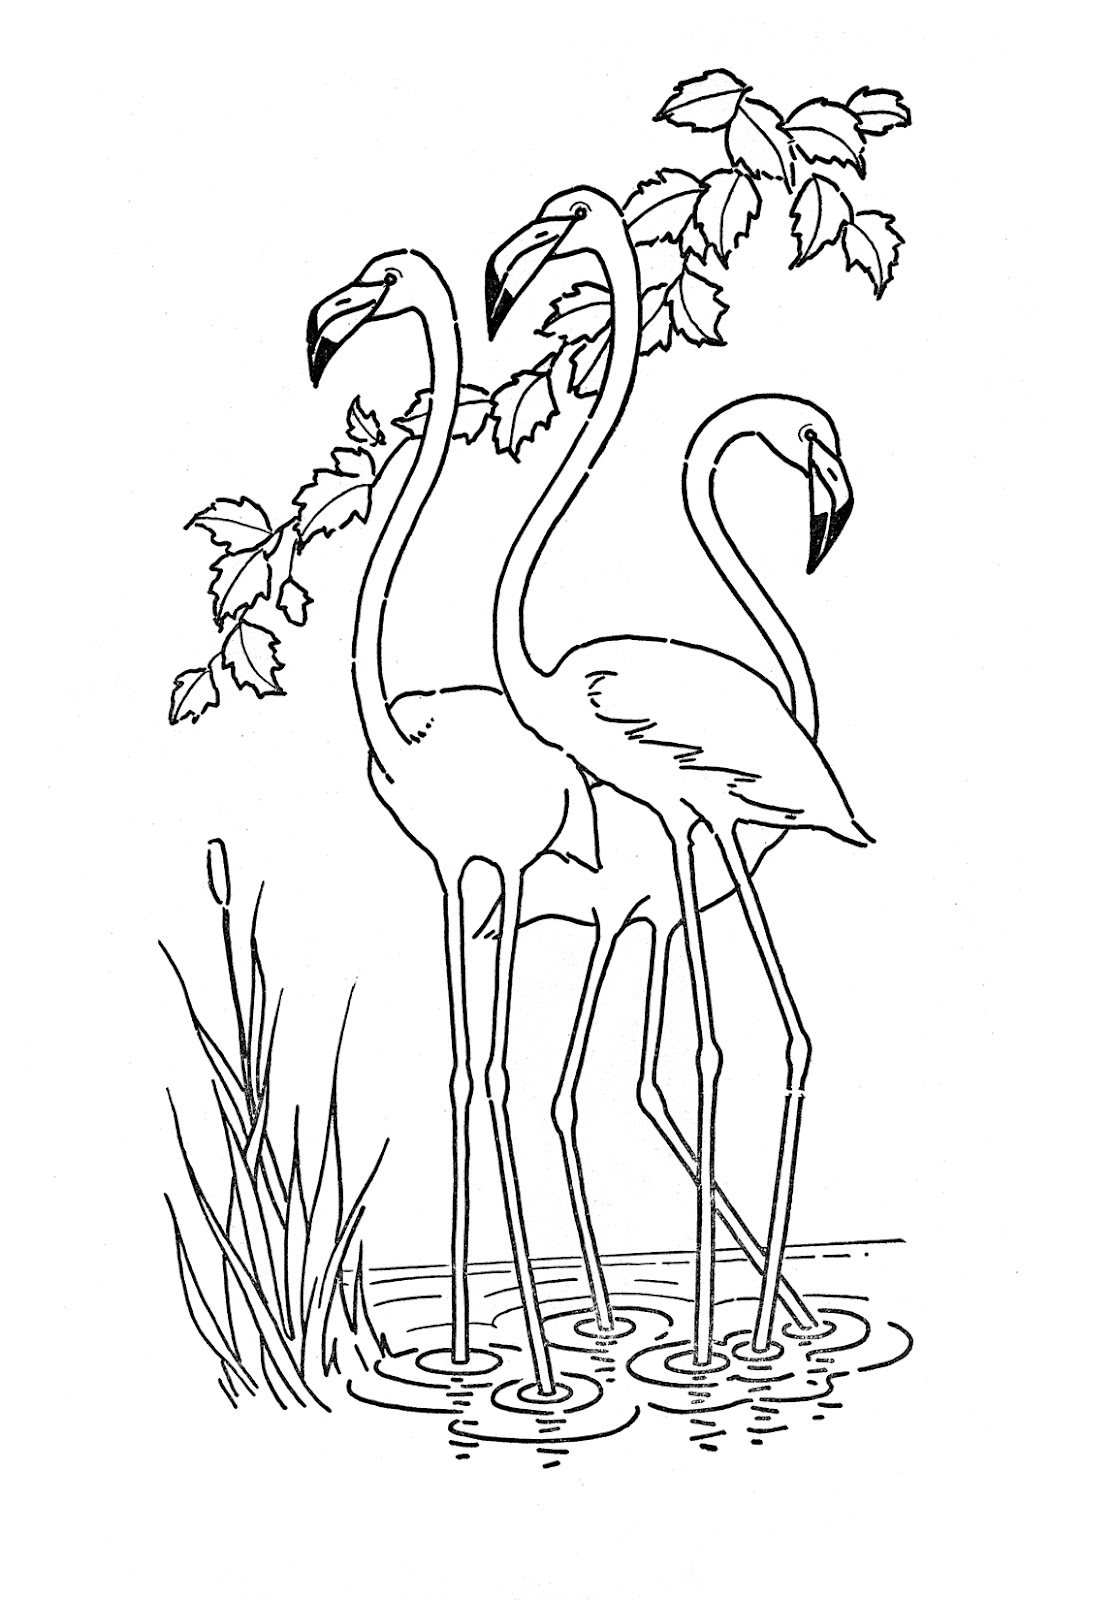 Flamingo Coloring Pages For Adults